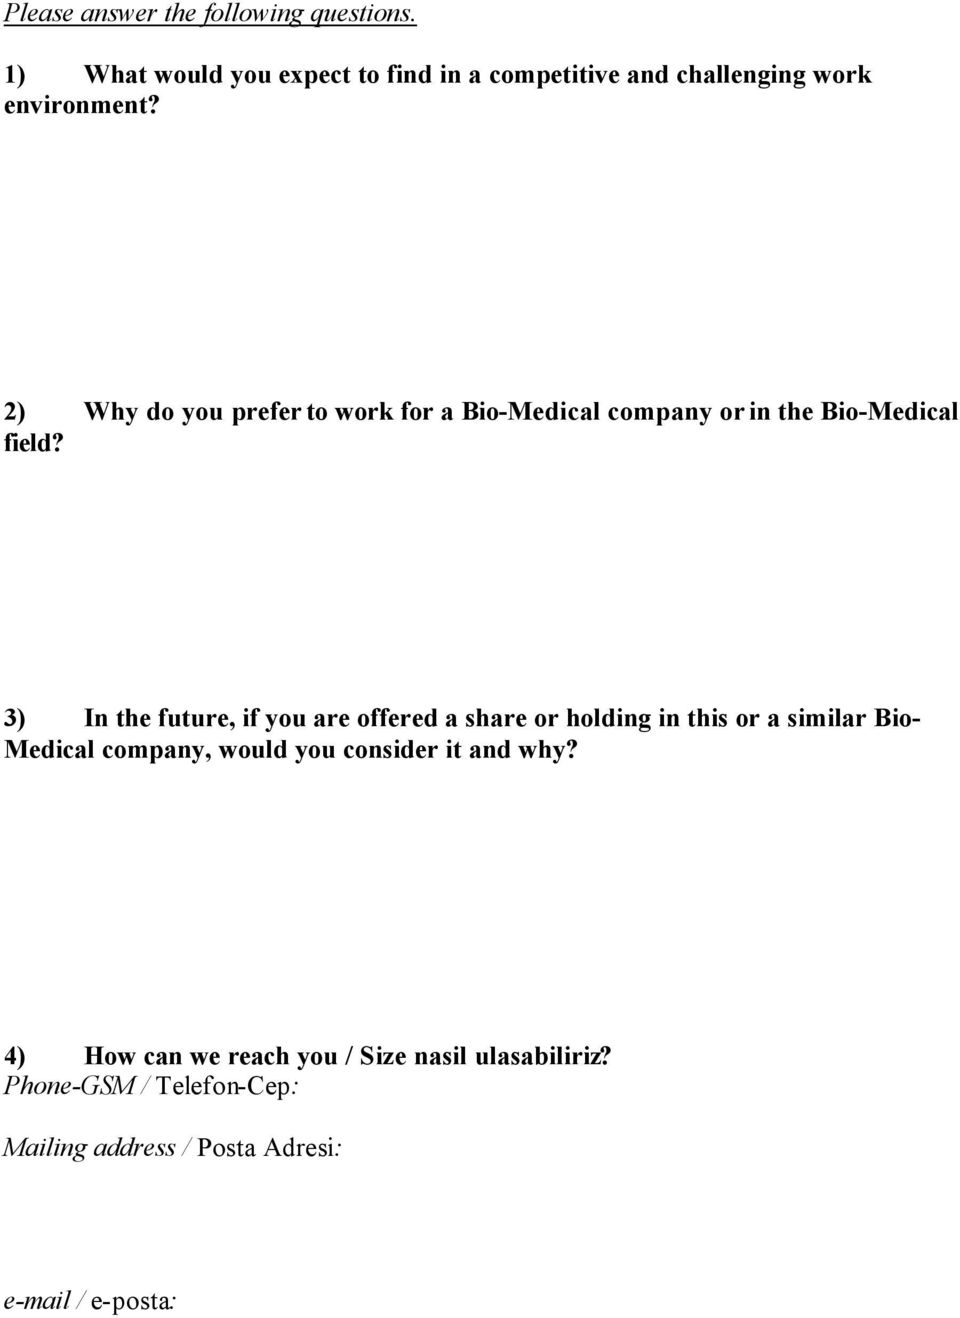 2) Why do you prefer to work for a Bio-Medical company or in the Bio-Medical field?